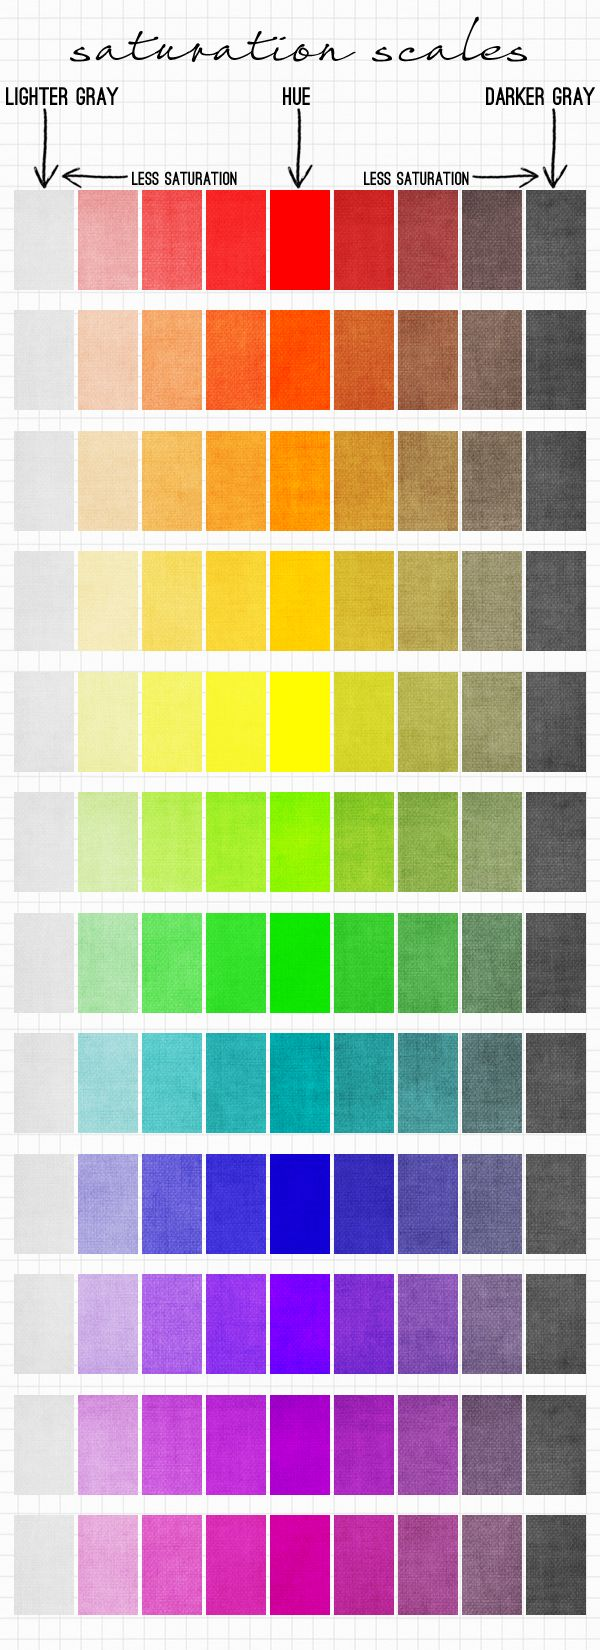 50 best ROY G BIV images on Pinterest | Color theory, Art education ...